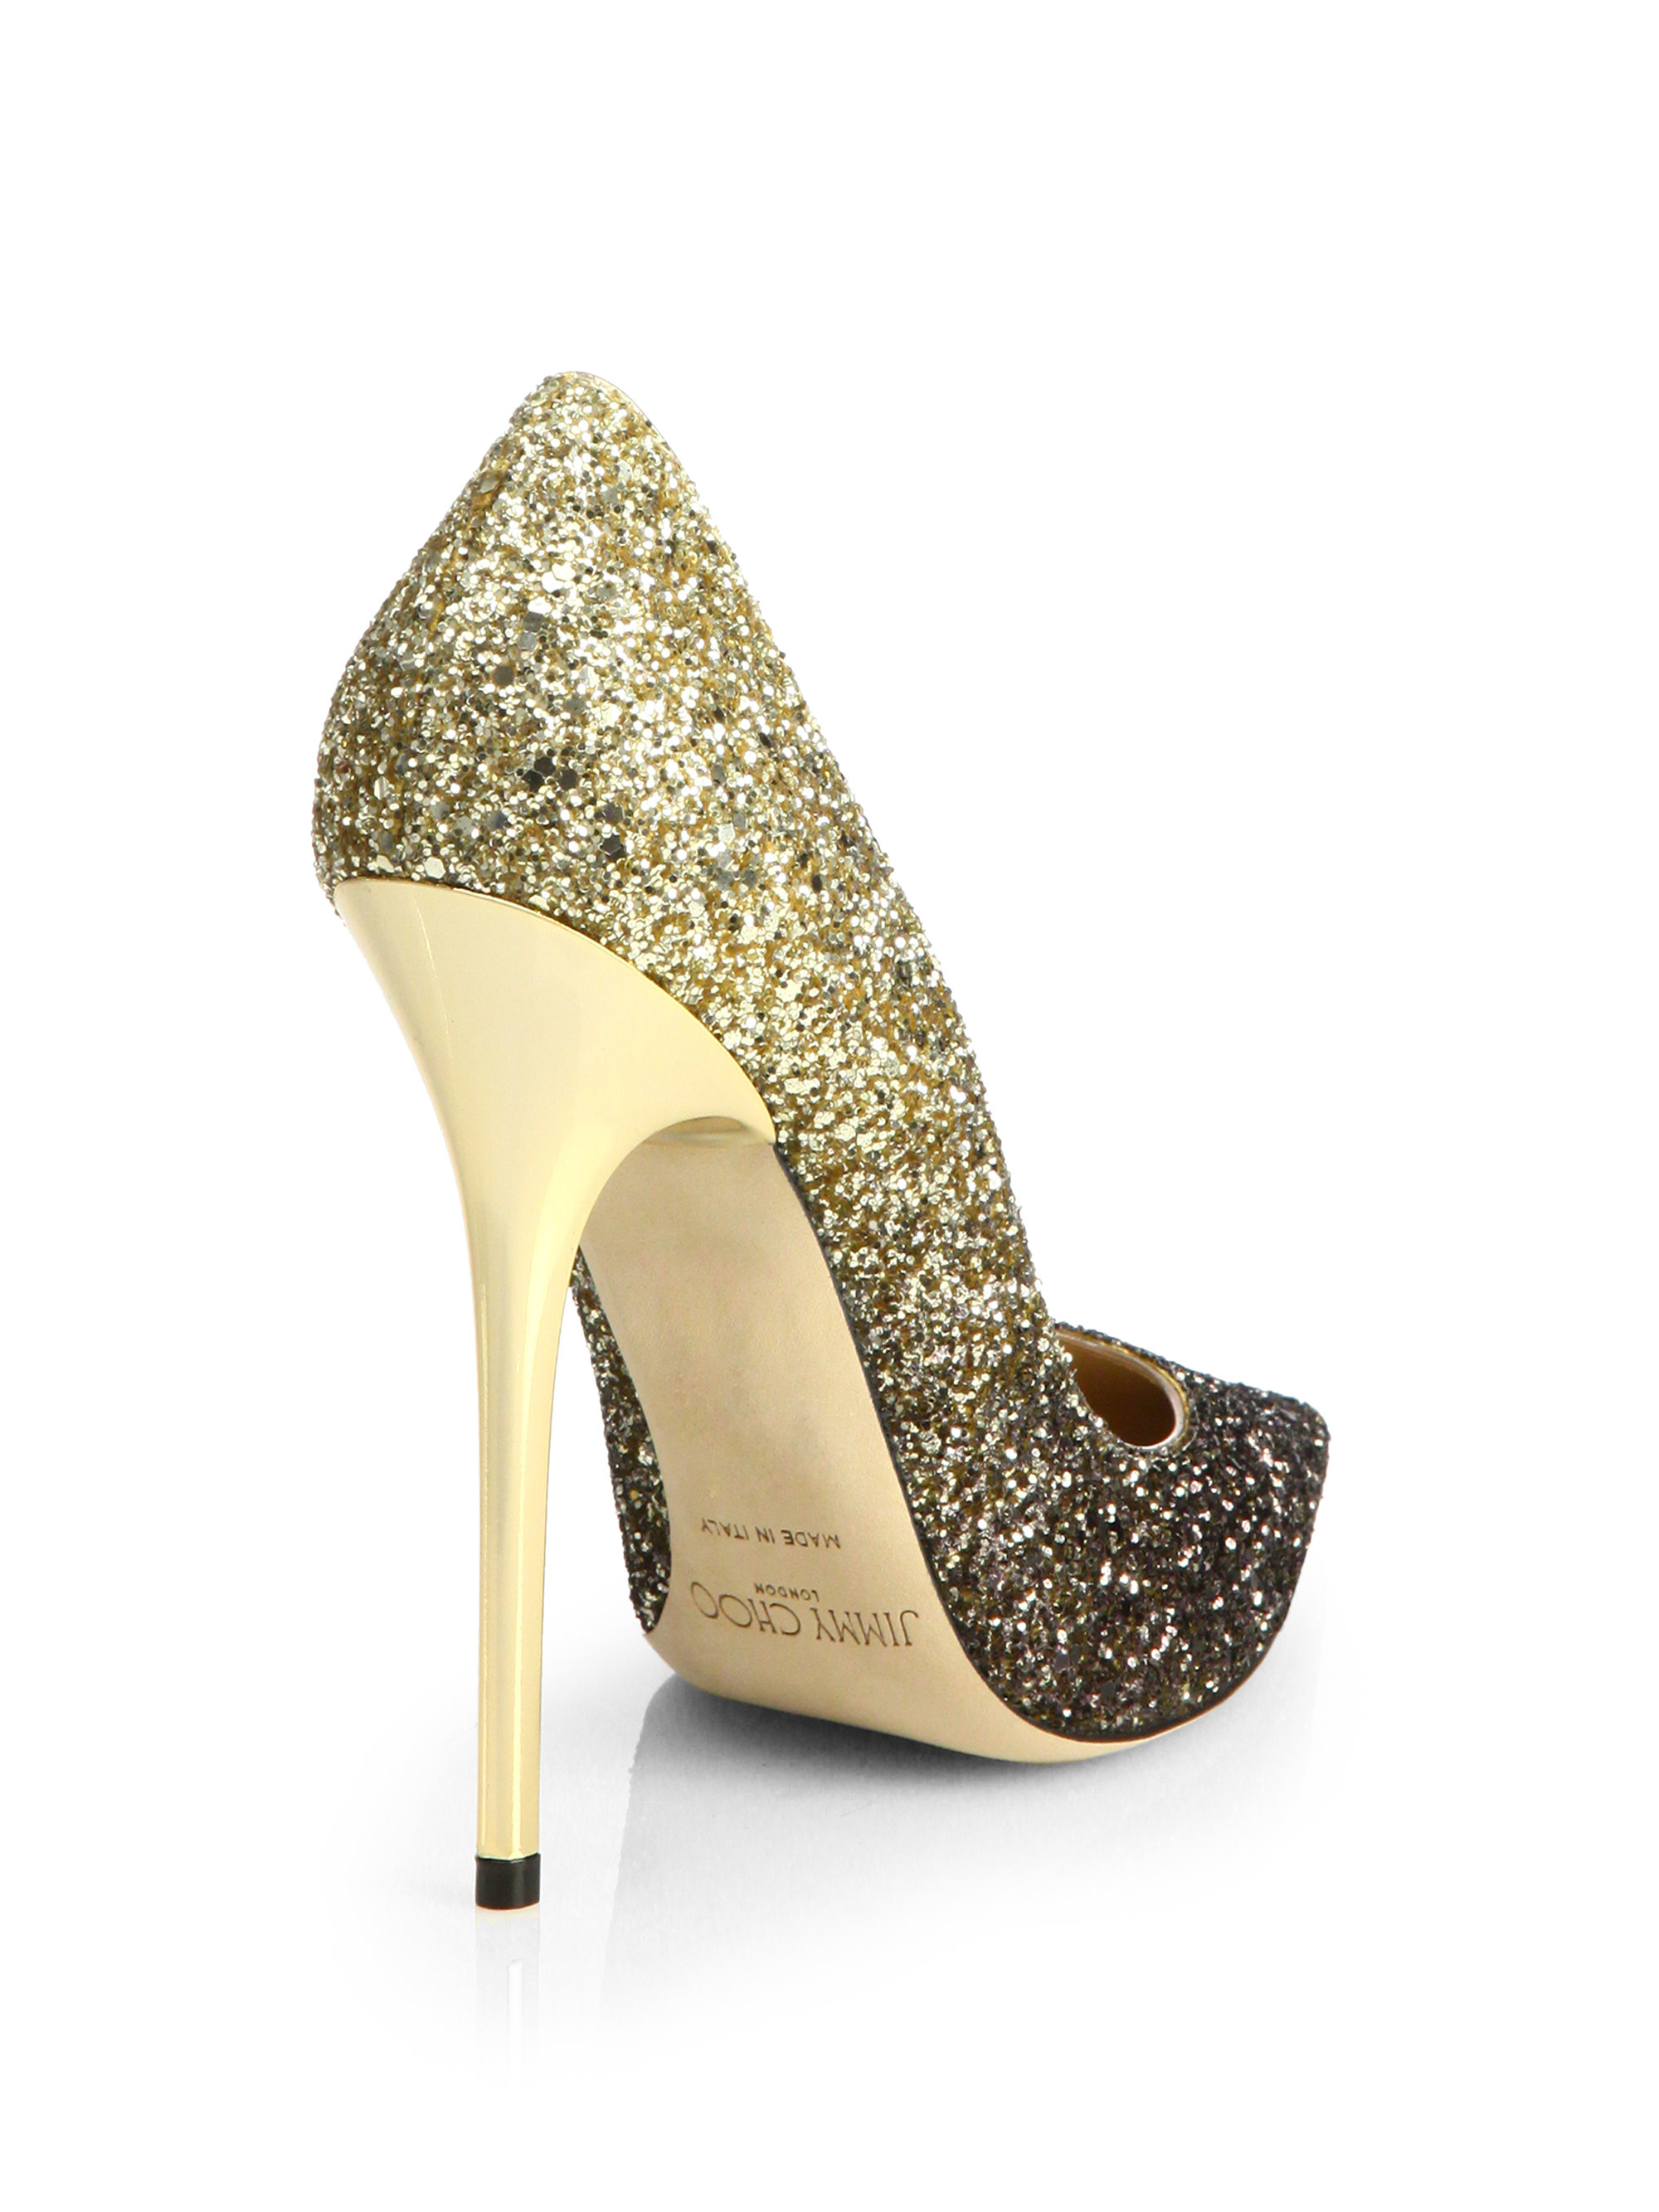 6c0e55cad0d Lyst - Jimmy Choo Anouk 120 Glitter Degrade Pumps in Metallic